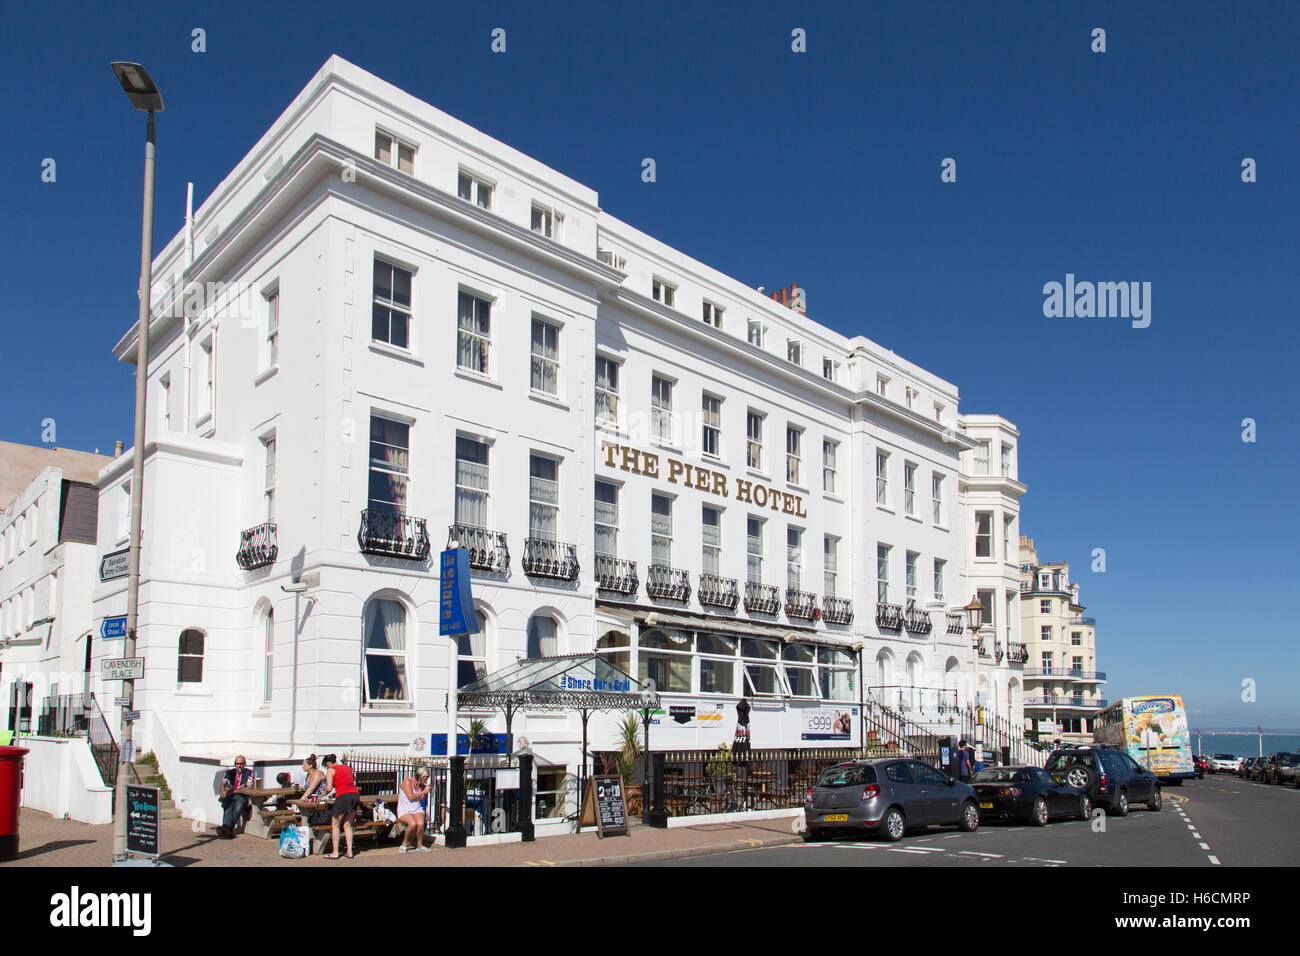 The Pier Hotel, Grand Parade, Eastbourne - Stock Image